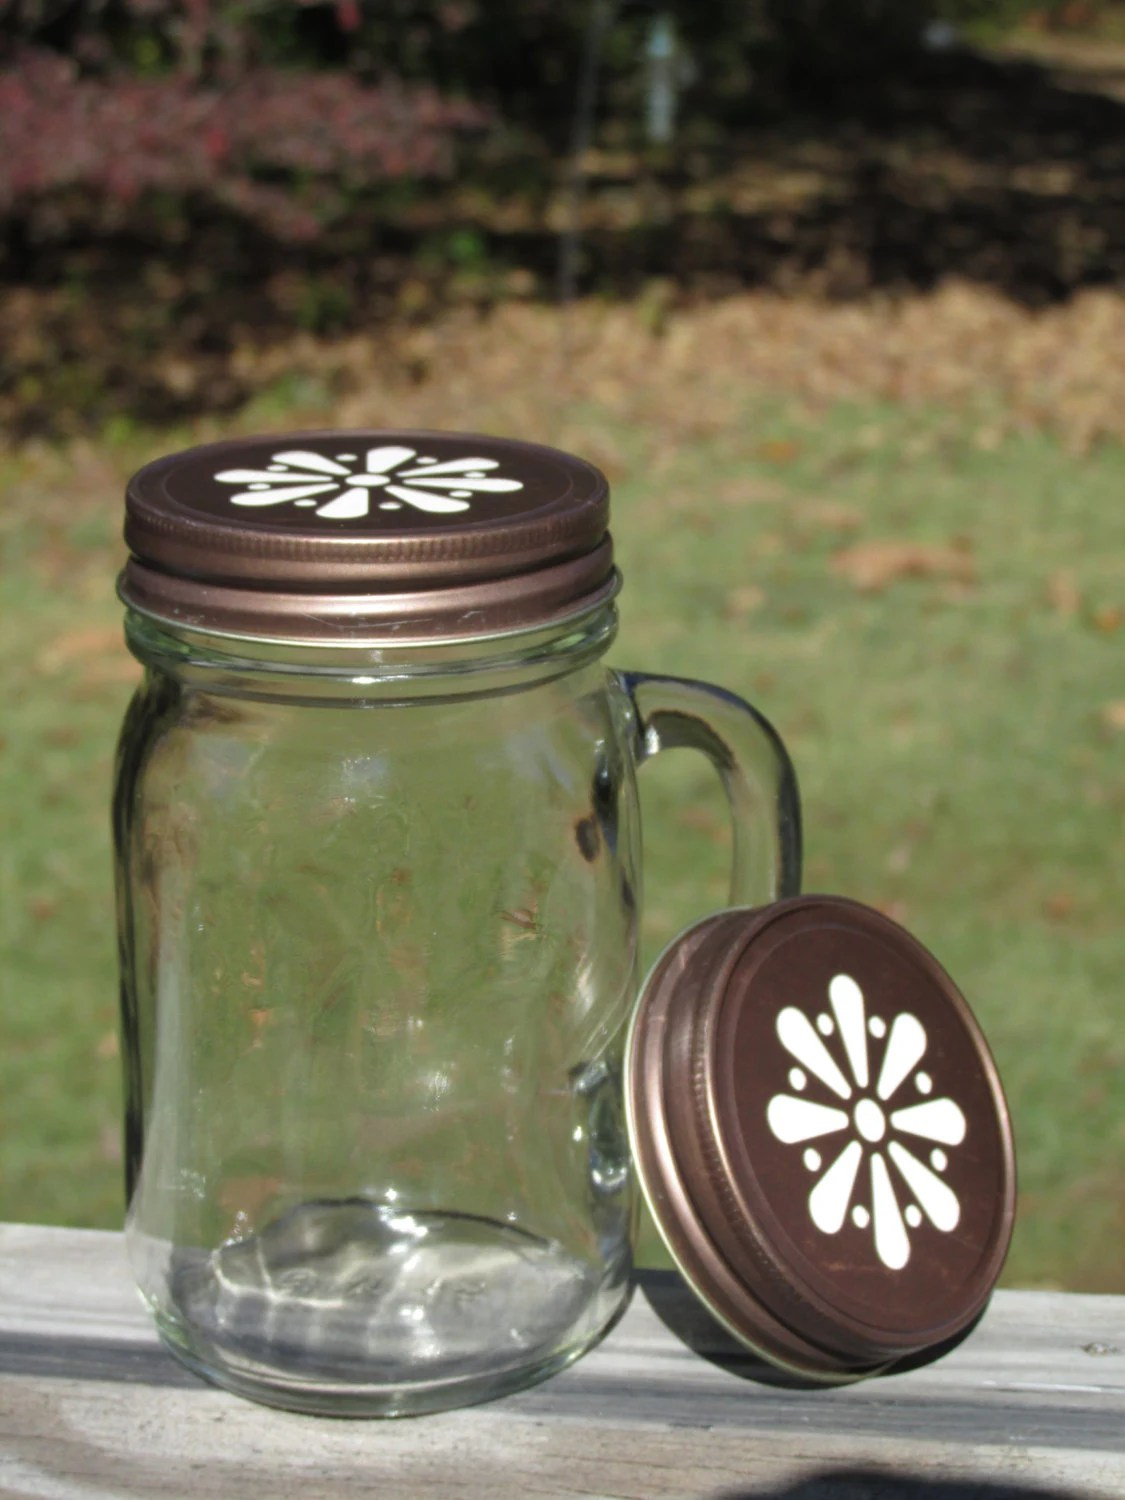 Personalized / Etched Glass / Daisy Lid / Handled Mason Jar / Pint Sized Mug / Makes a Great Christmas Gift - MintJulepsnMuddin